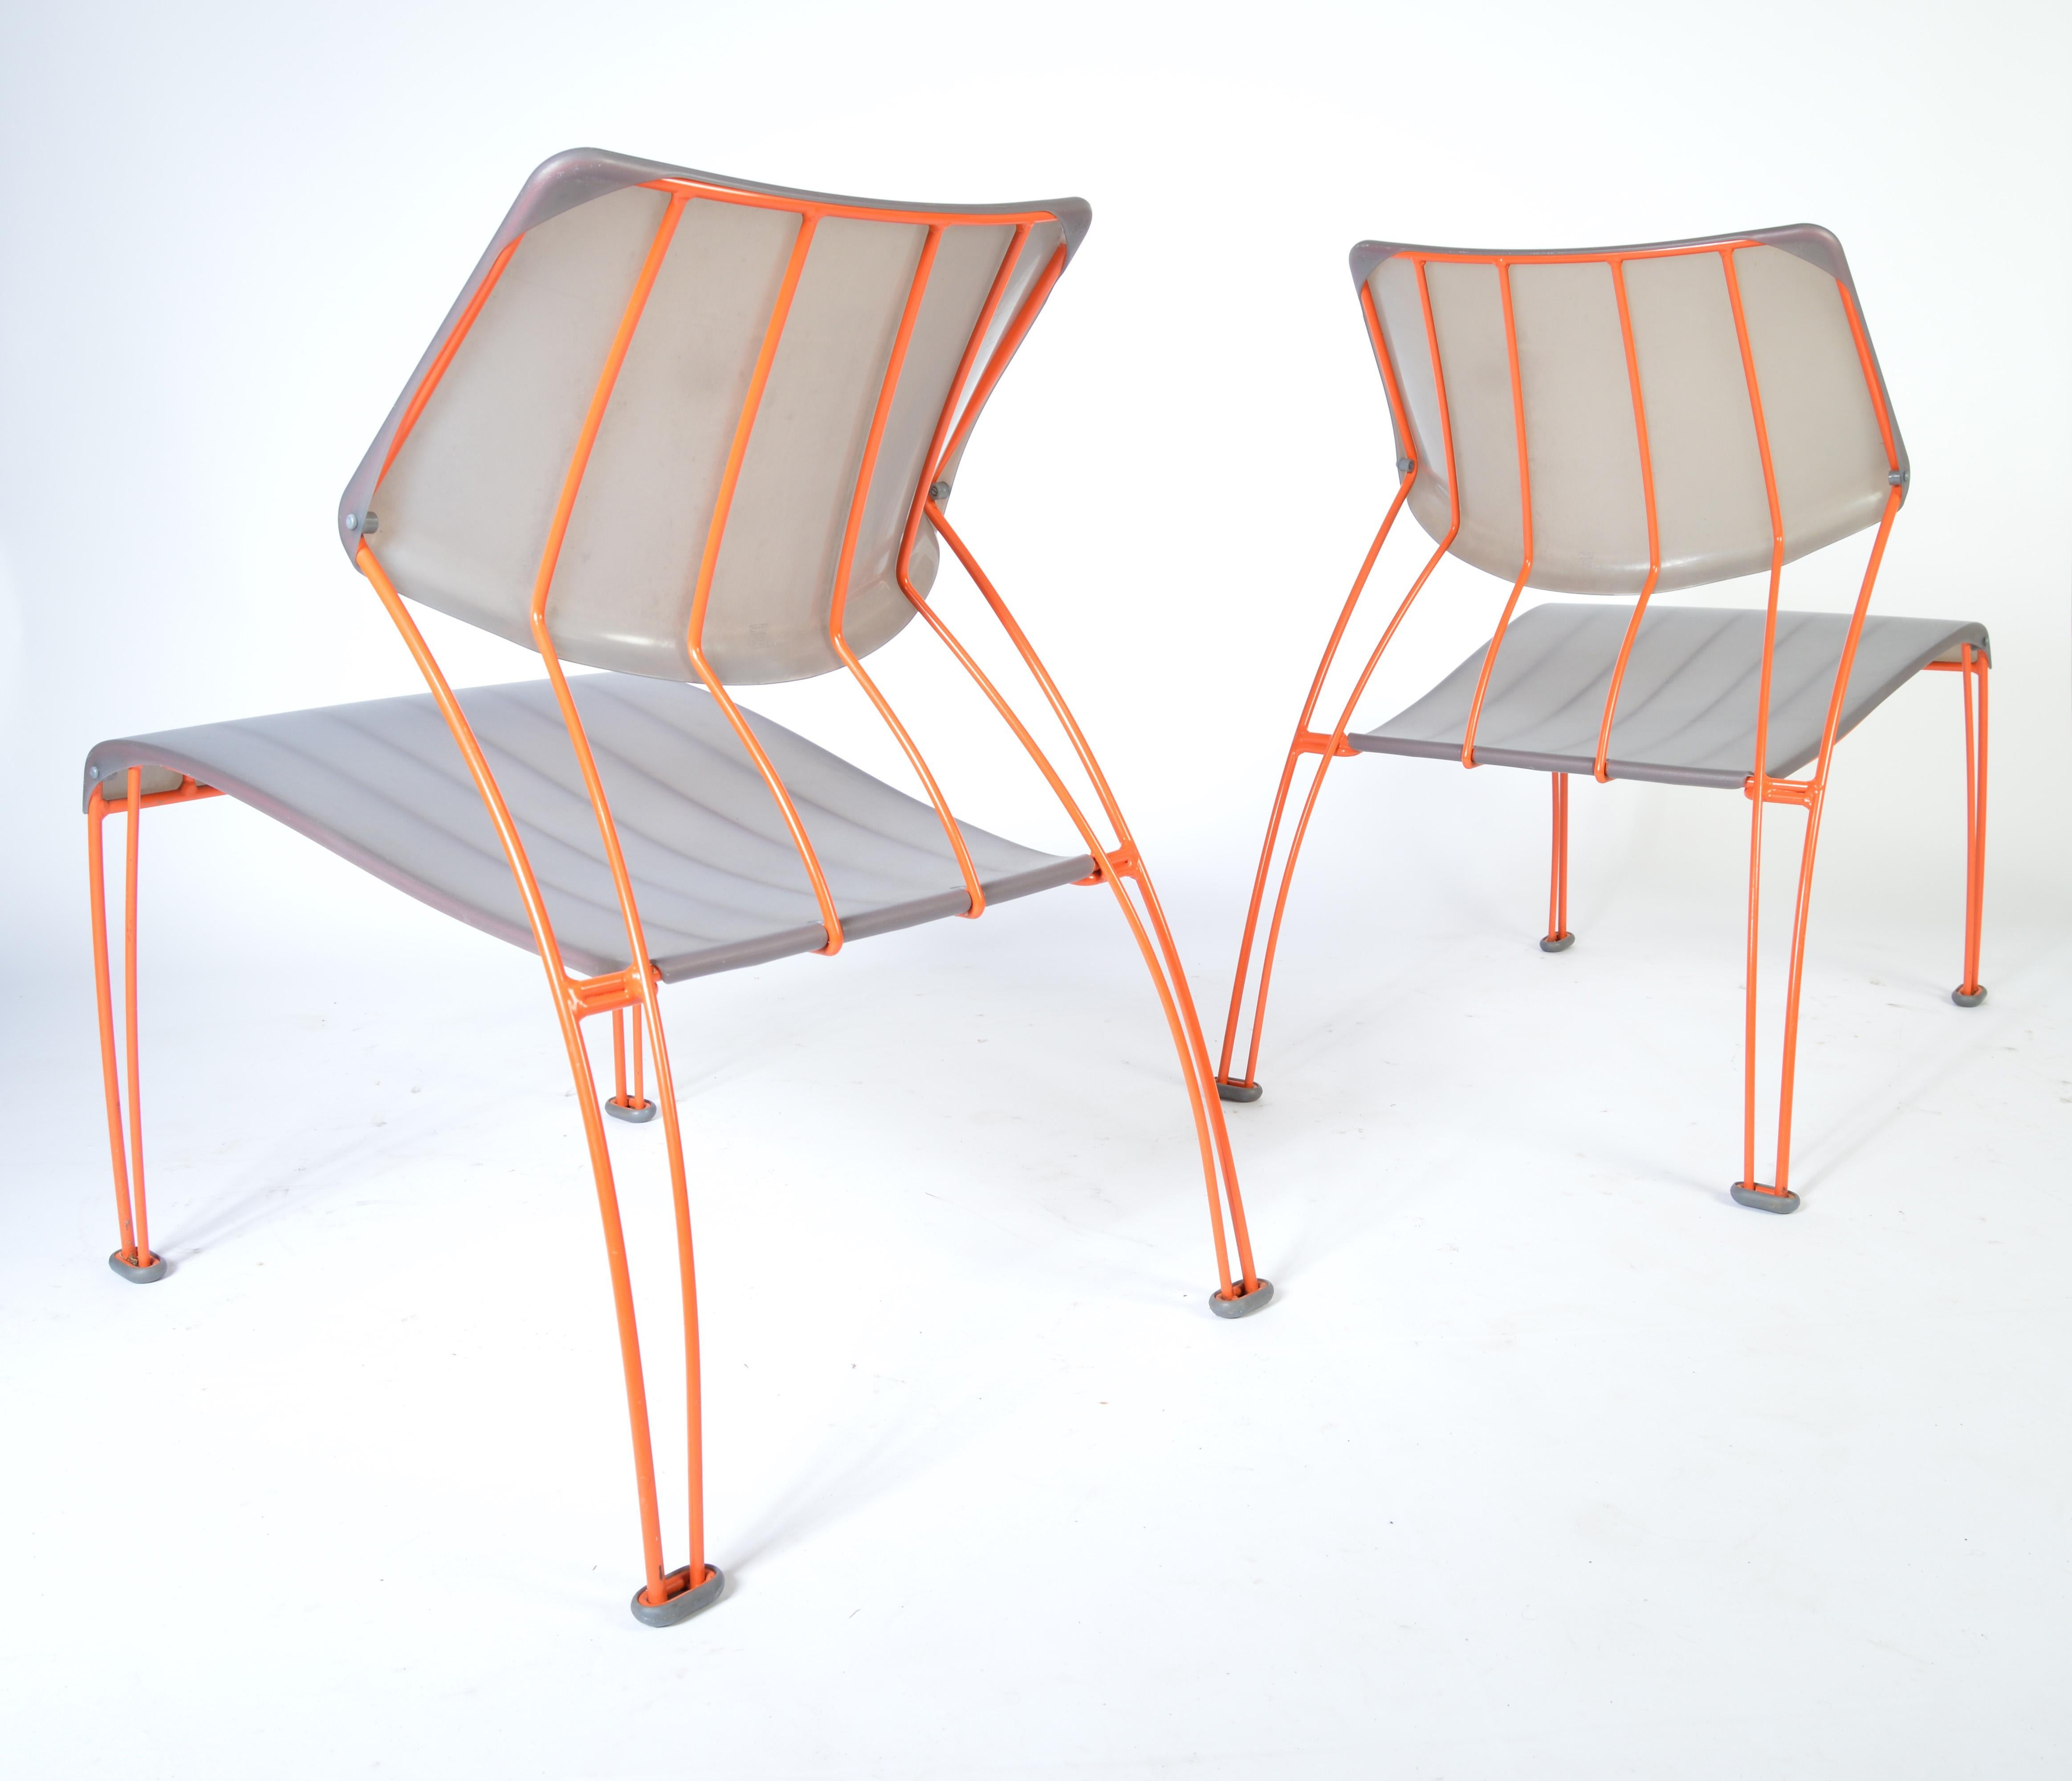 Ikea Outdoor Furniture Pair Of Monika Mulder Ps Hasslo For Ikea Outdoor Lounge Chairs Circa 1990